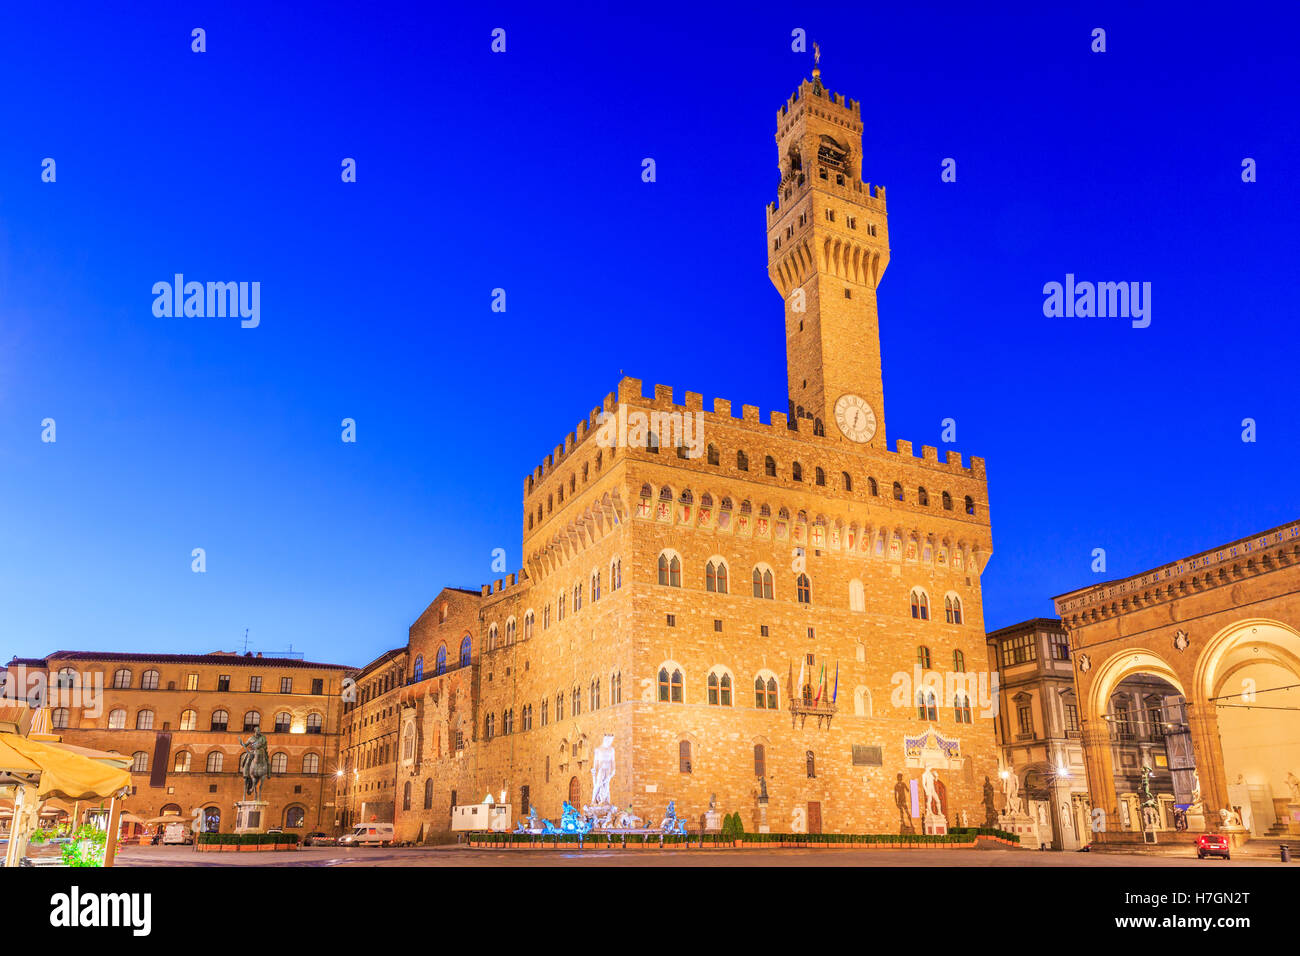 Palazzo Vecchio in Florence at twilight. Tuscany, Italy - Stock Image